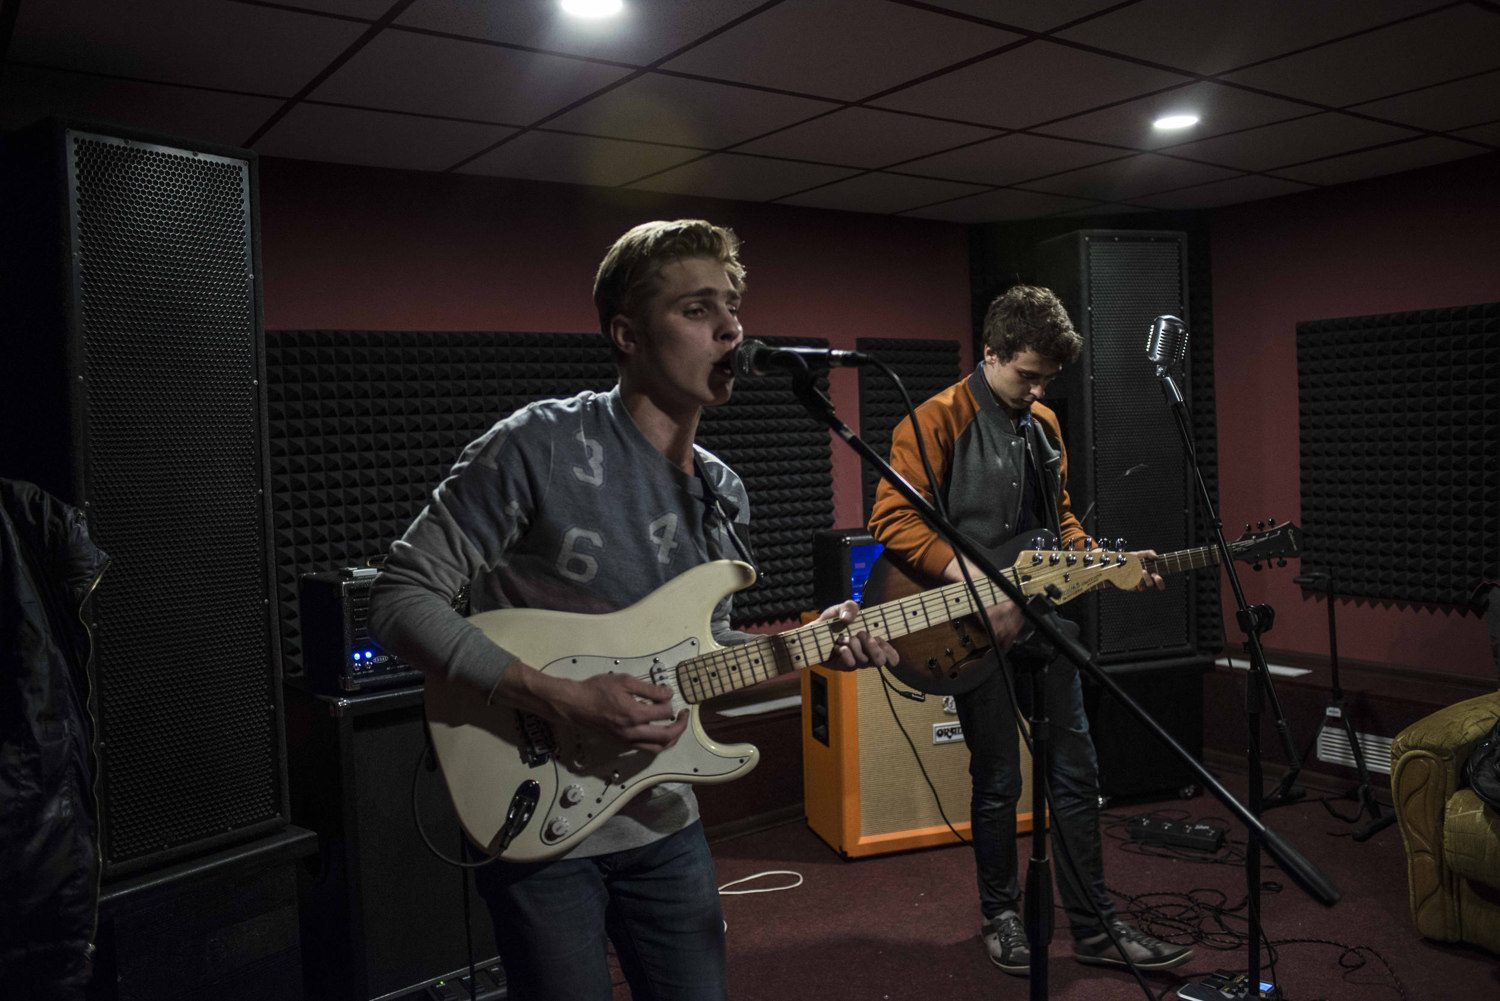 Danyl Bogdanerko, (left) 18 and Denys Rybchenko 17 play with their band Bonehouse in the suburbs of Kiev, Ukraine.